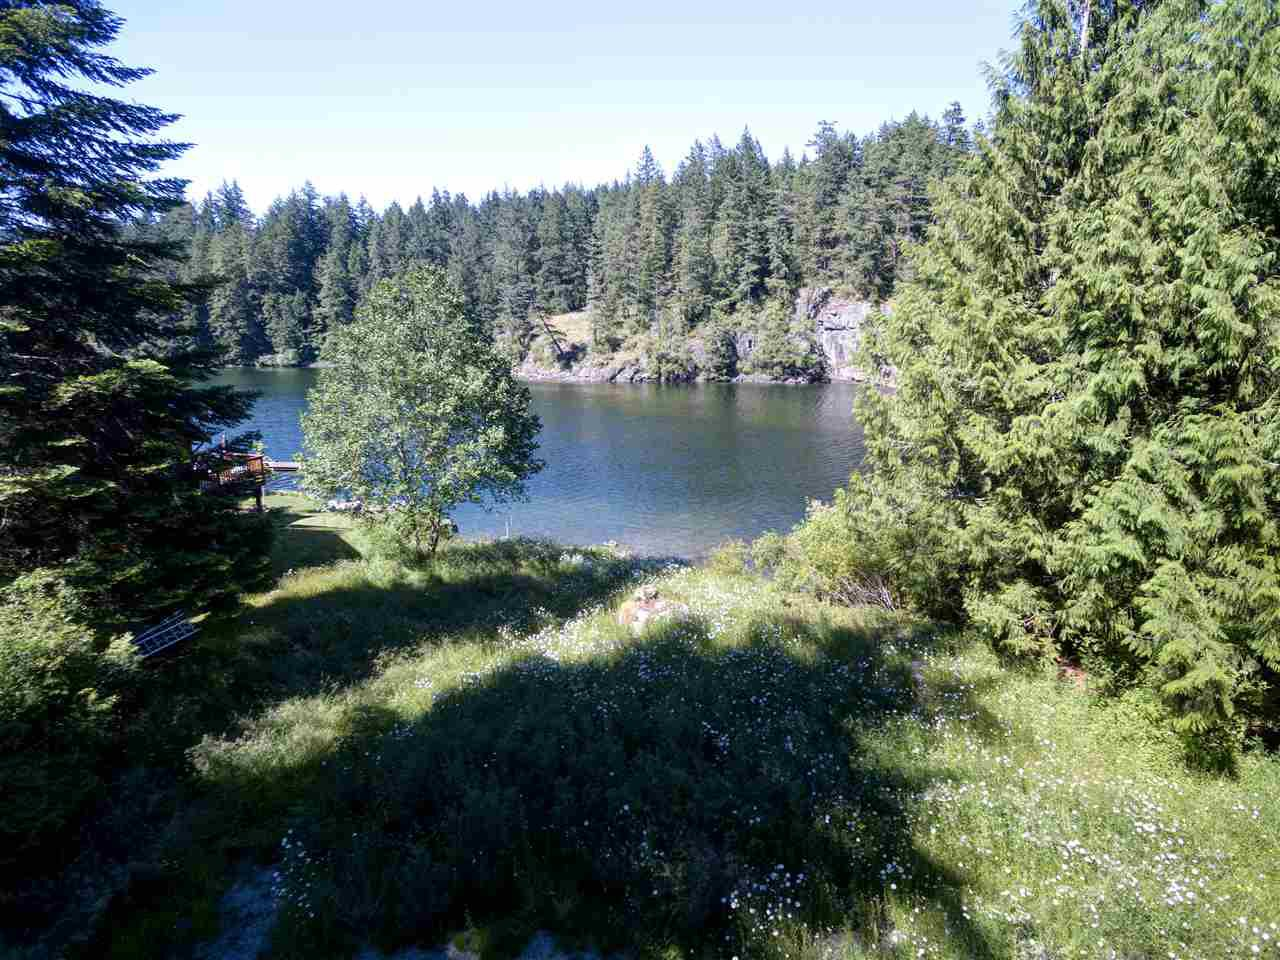 Photo 3: Photos: 9818 WESCAN Road in Halfmoon Bay: Halfmn Bay Secret Cv Redroofs Land for sale (Sunshine Coast)  : MLS®# R2375125